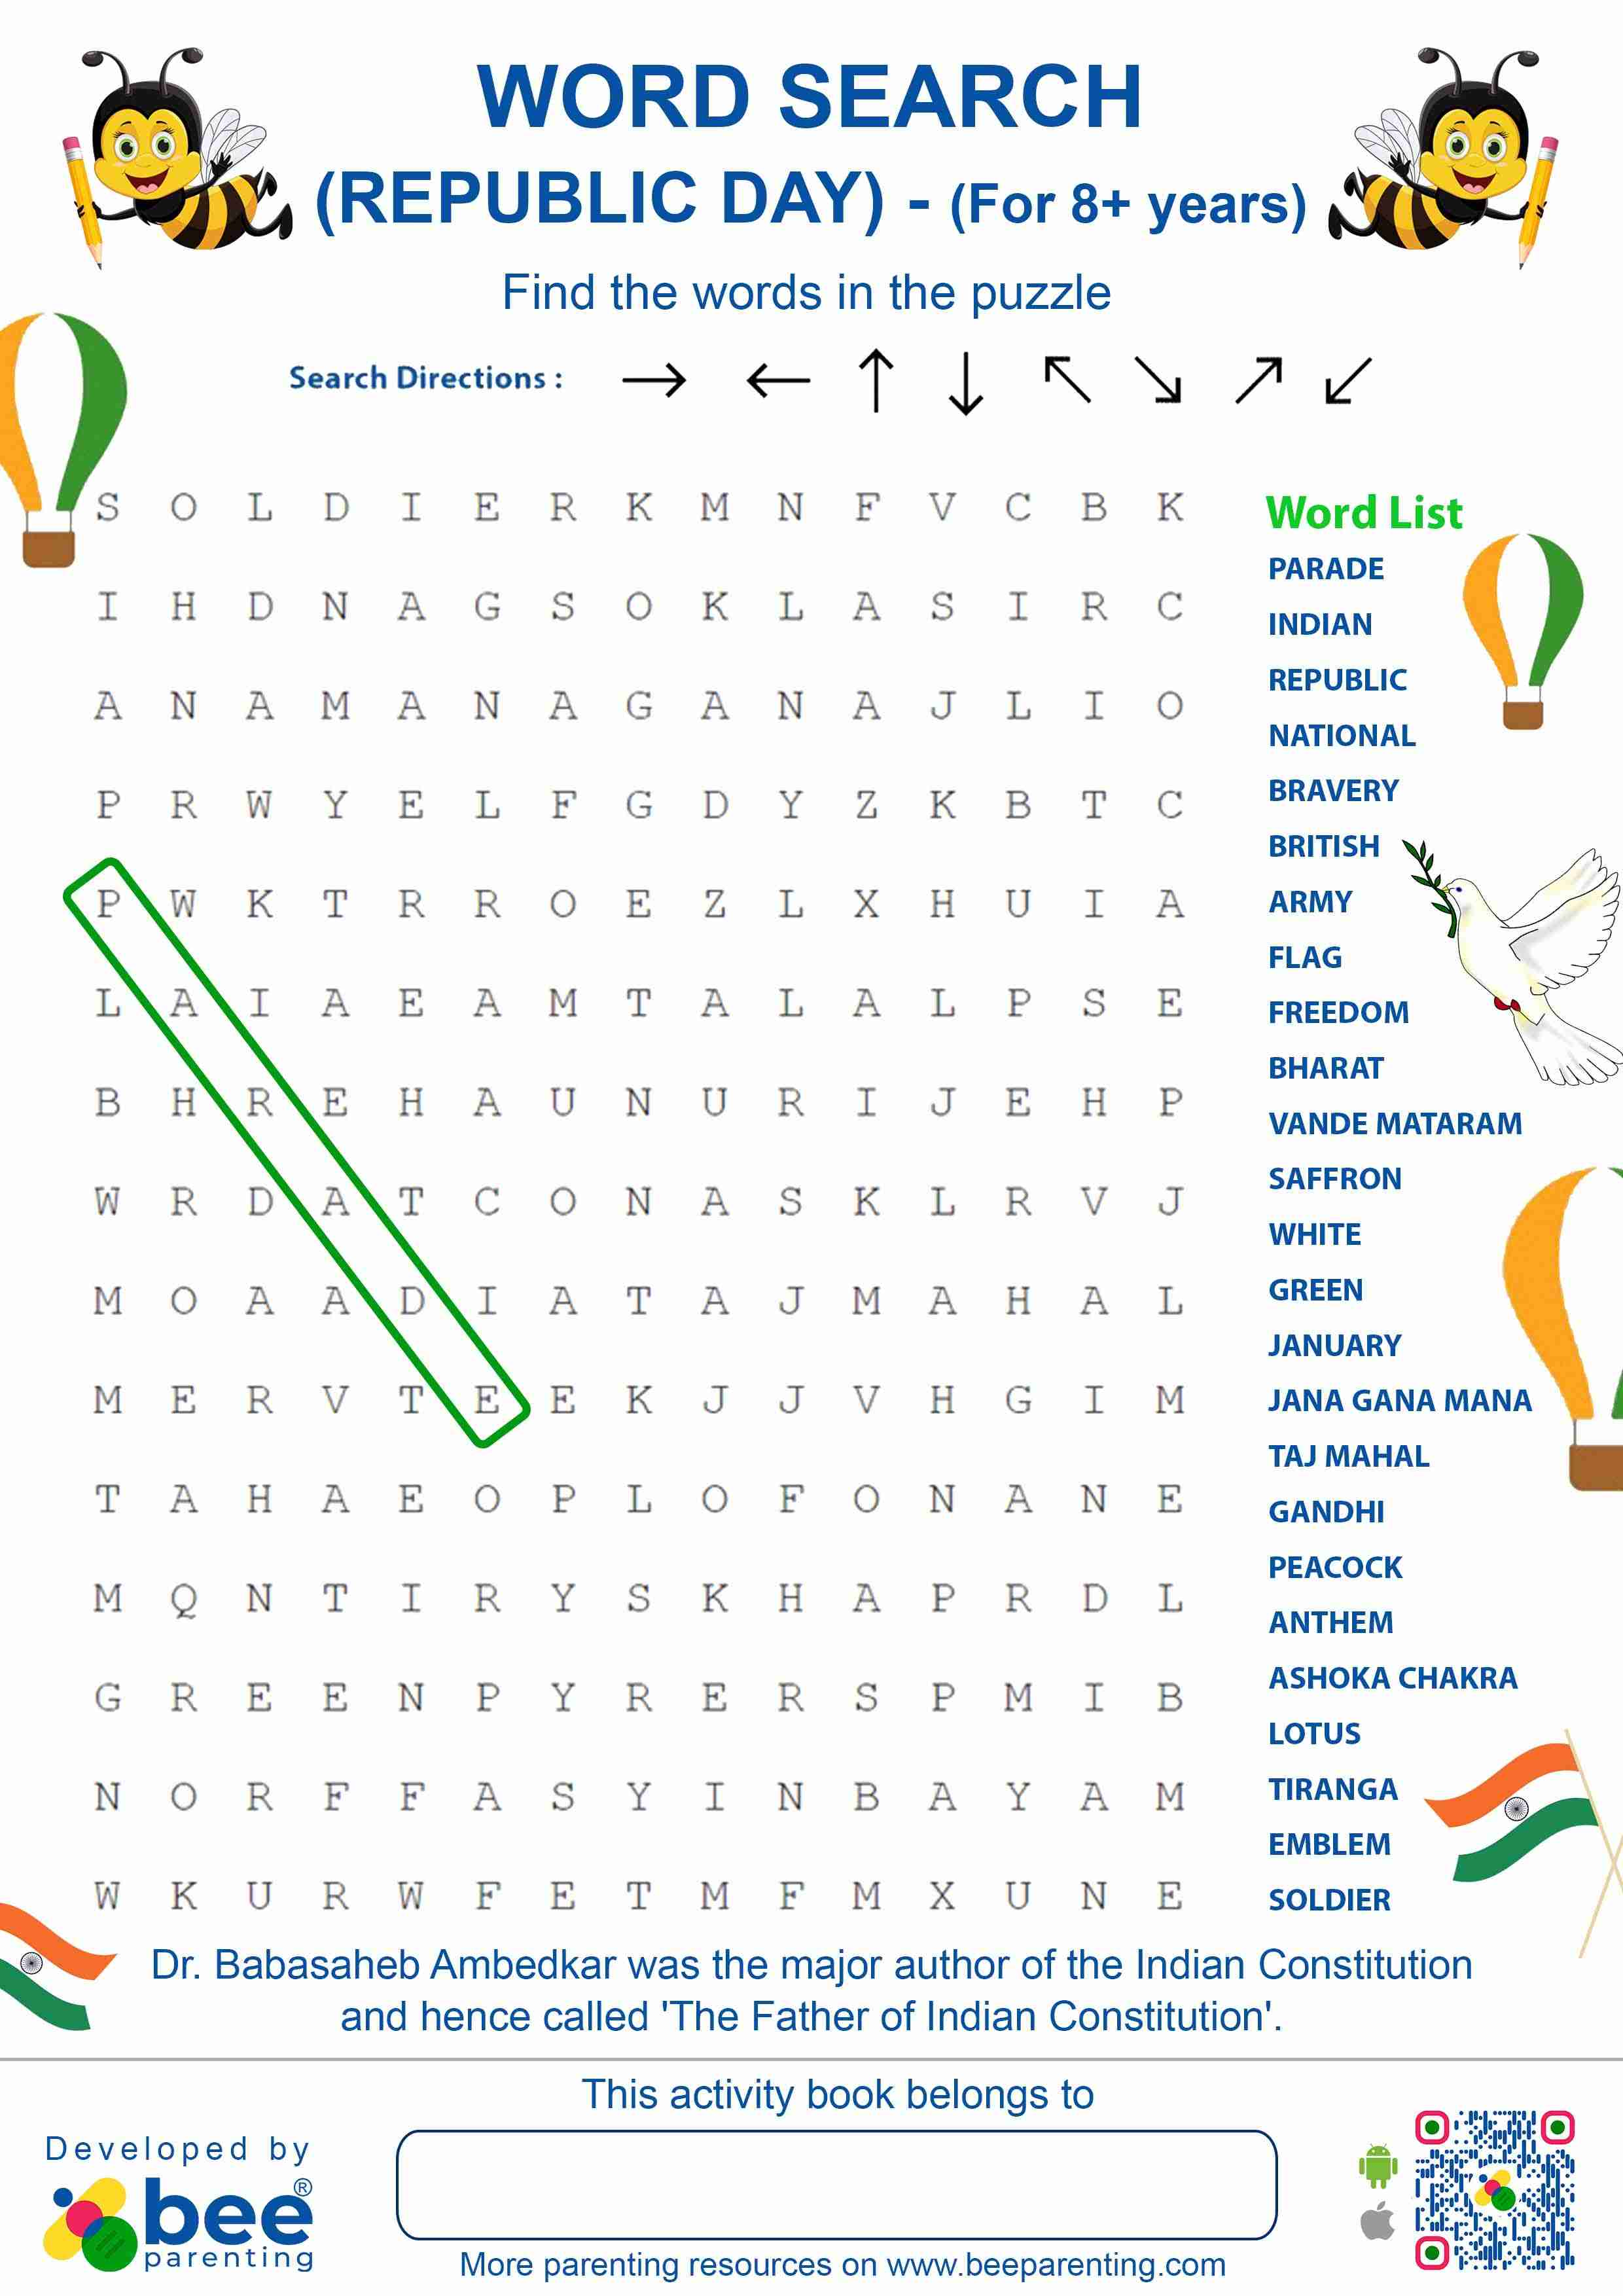 Indian Republic Day Word Search